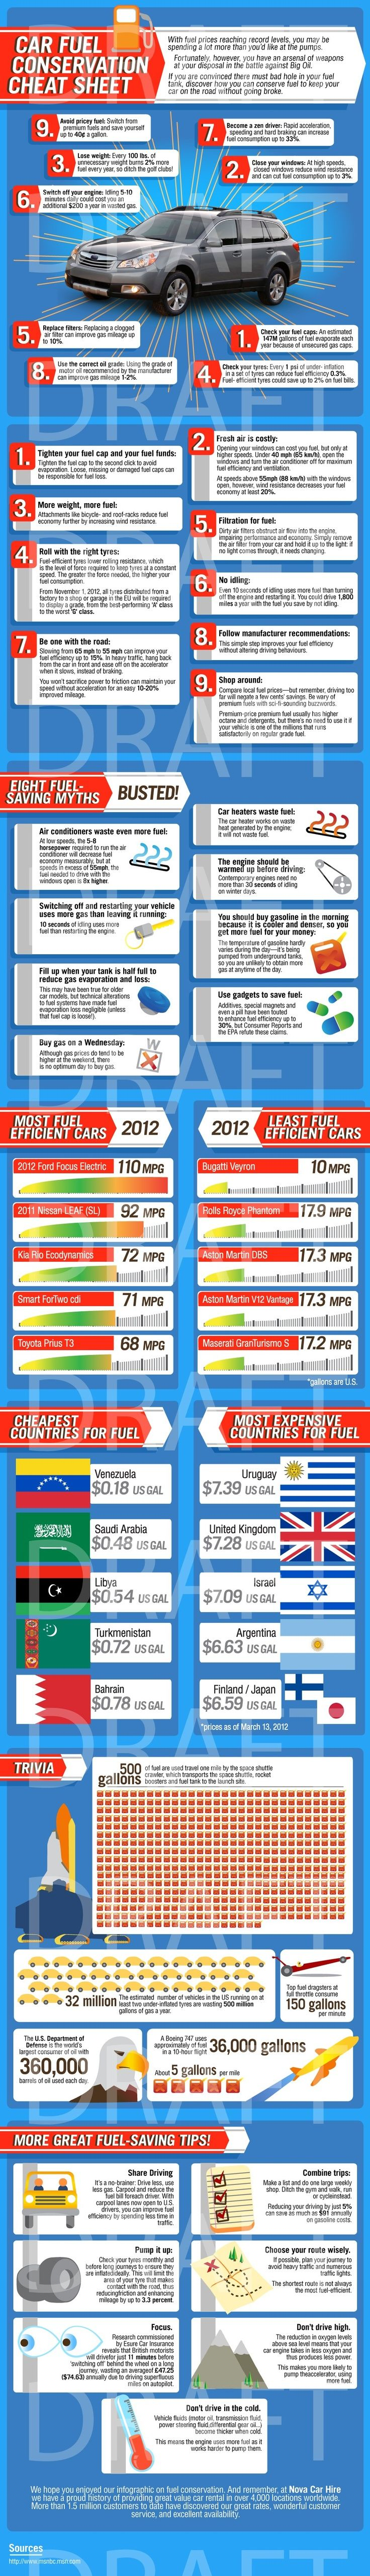 Great infographic on car fuel conservation.